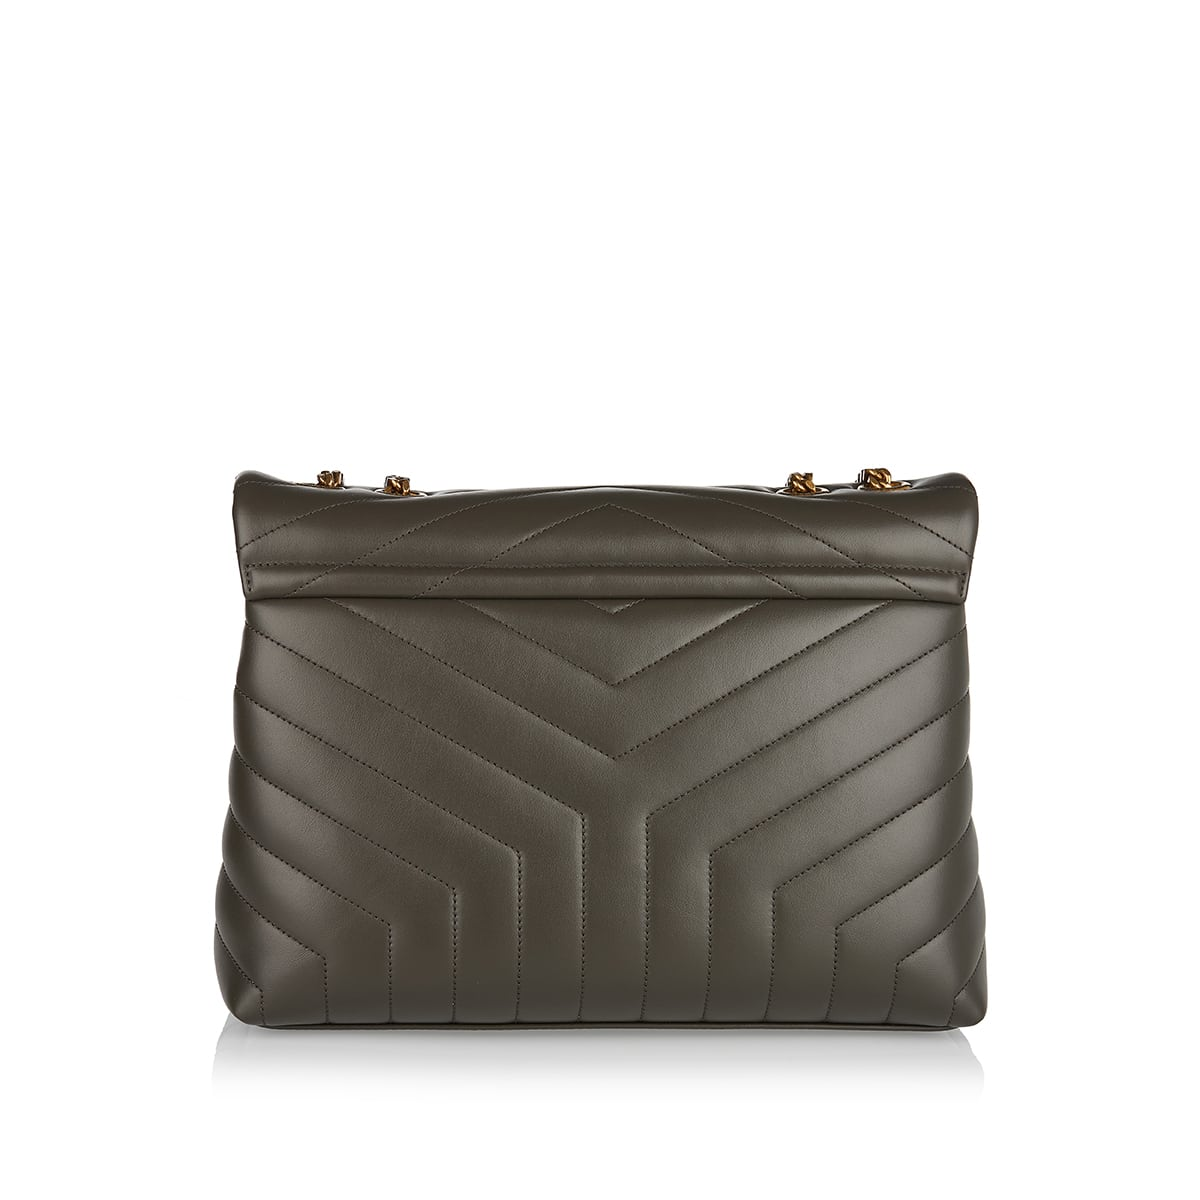 Loulou medium quilted leather bag